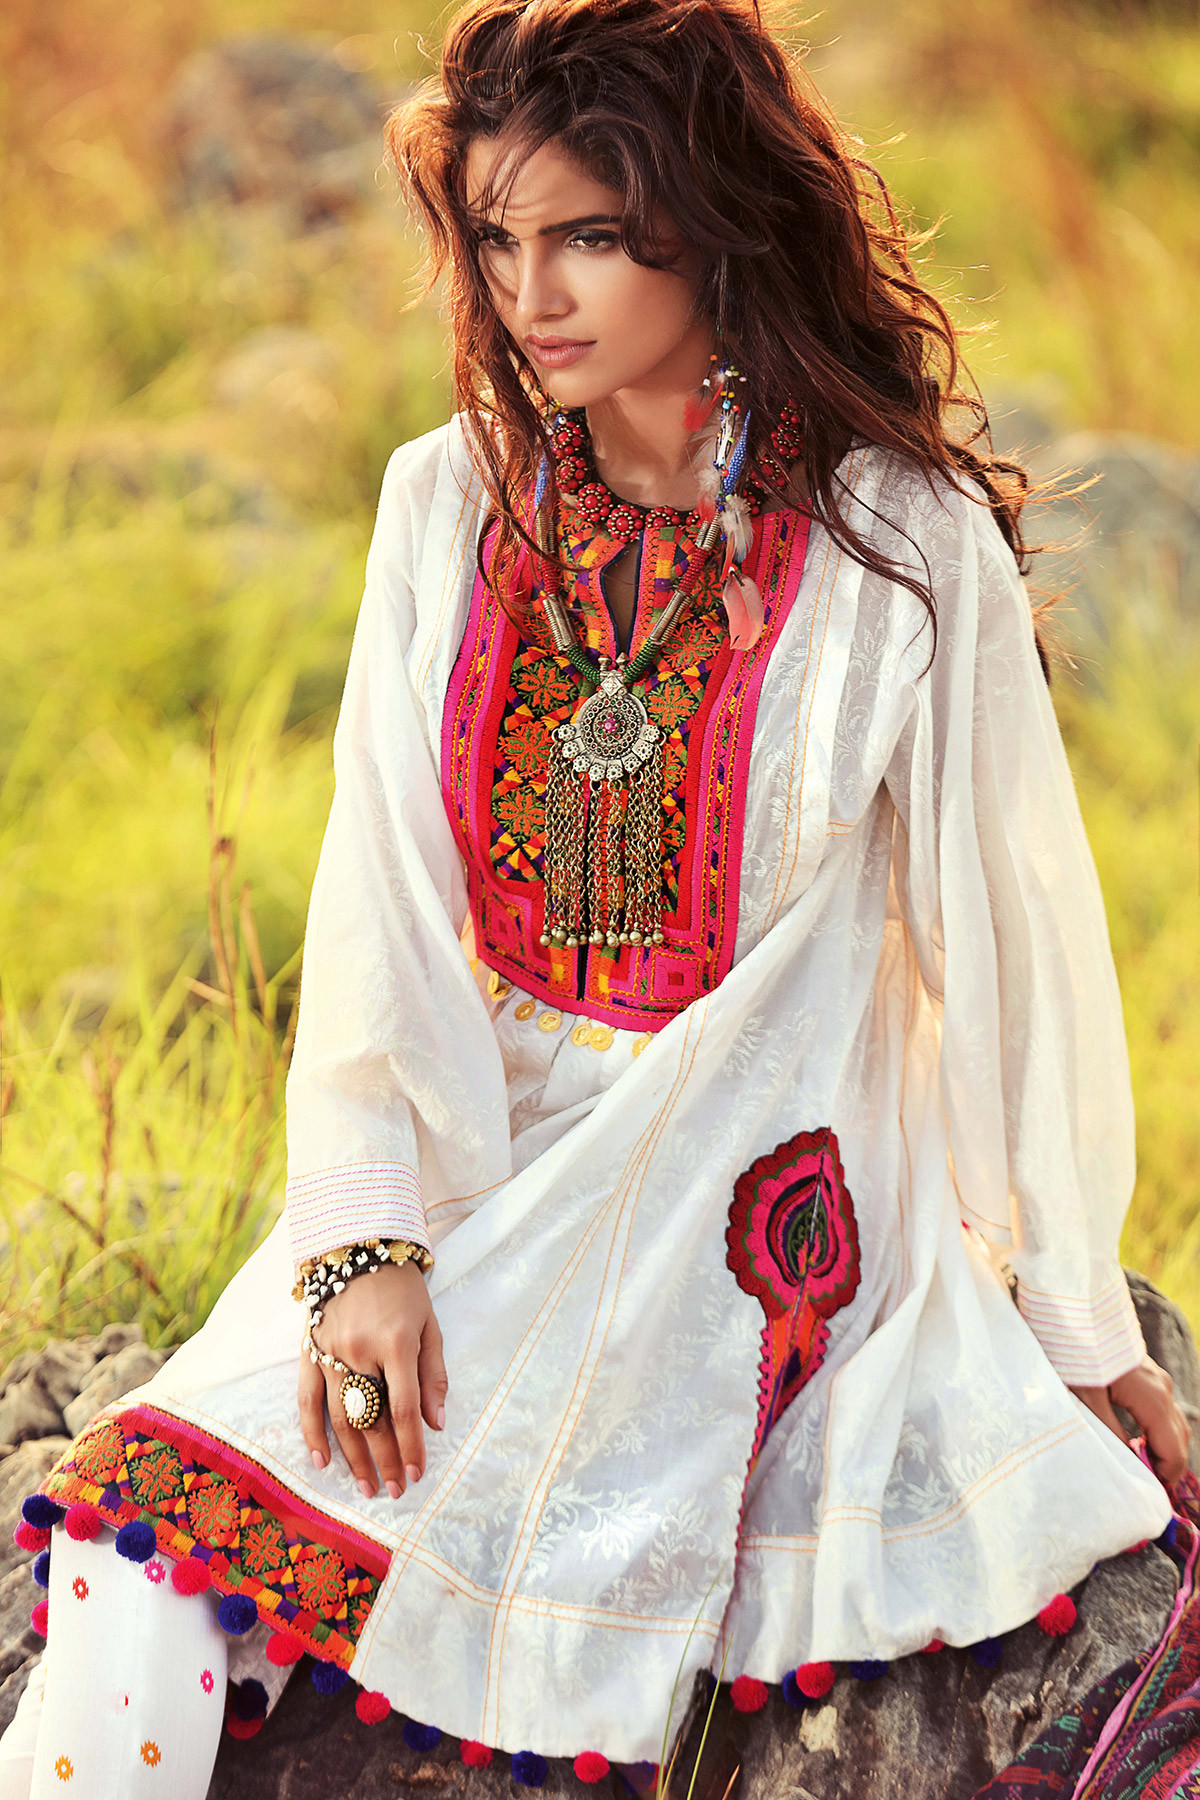 gypsy 2017 collection by Gul ahmed